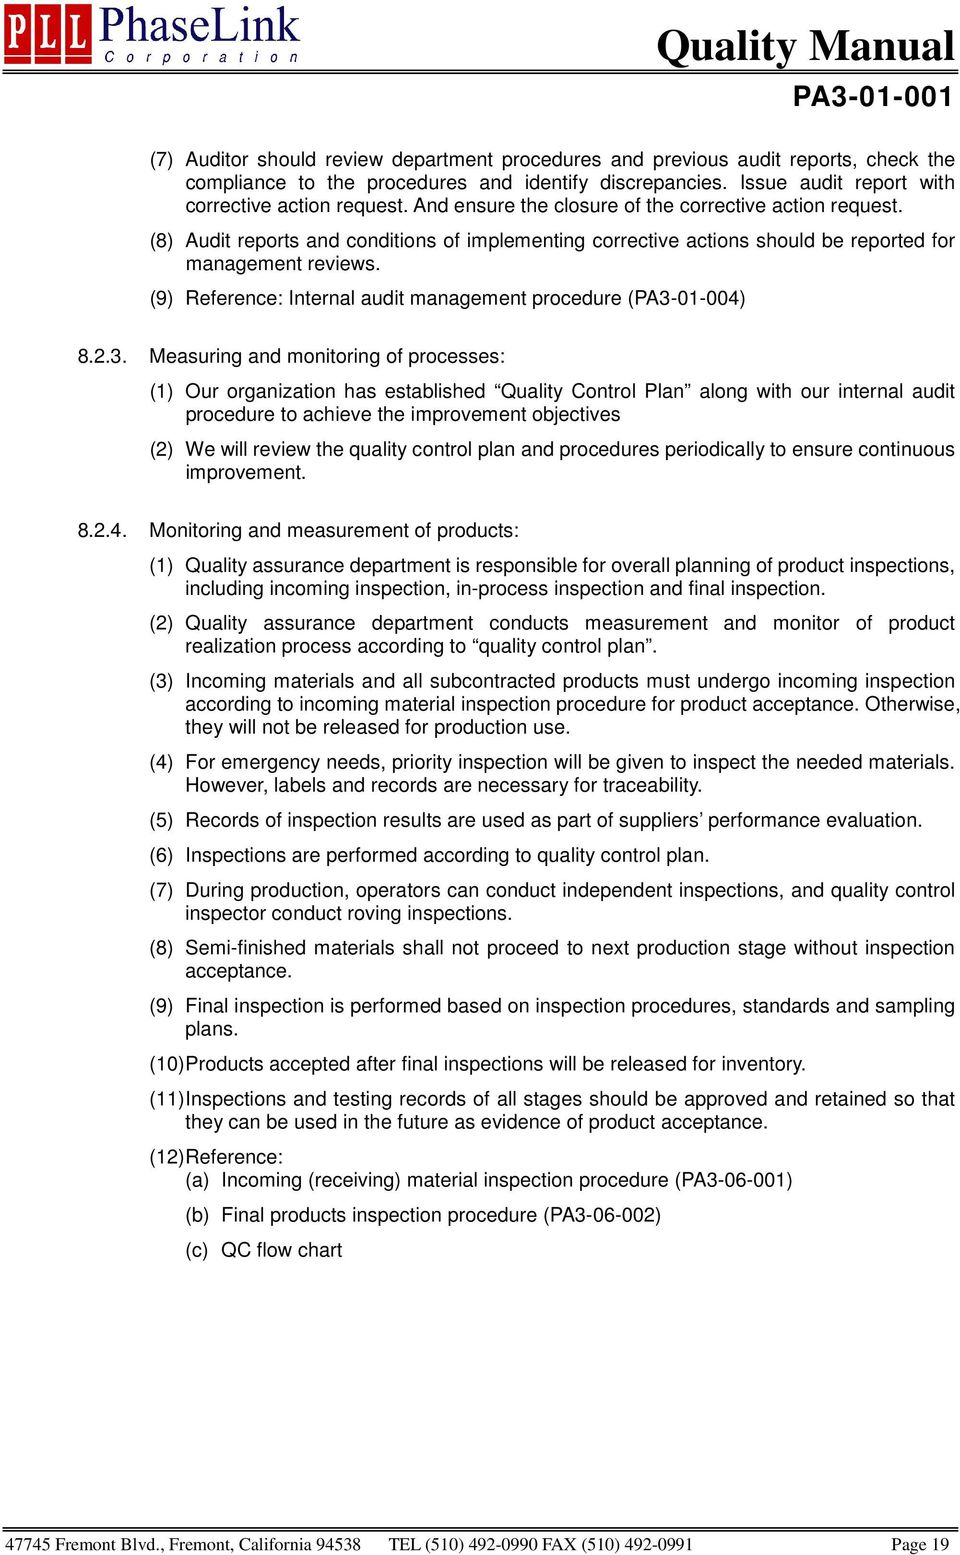 (9) Reference: Internal audit management (PA3-